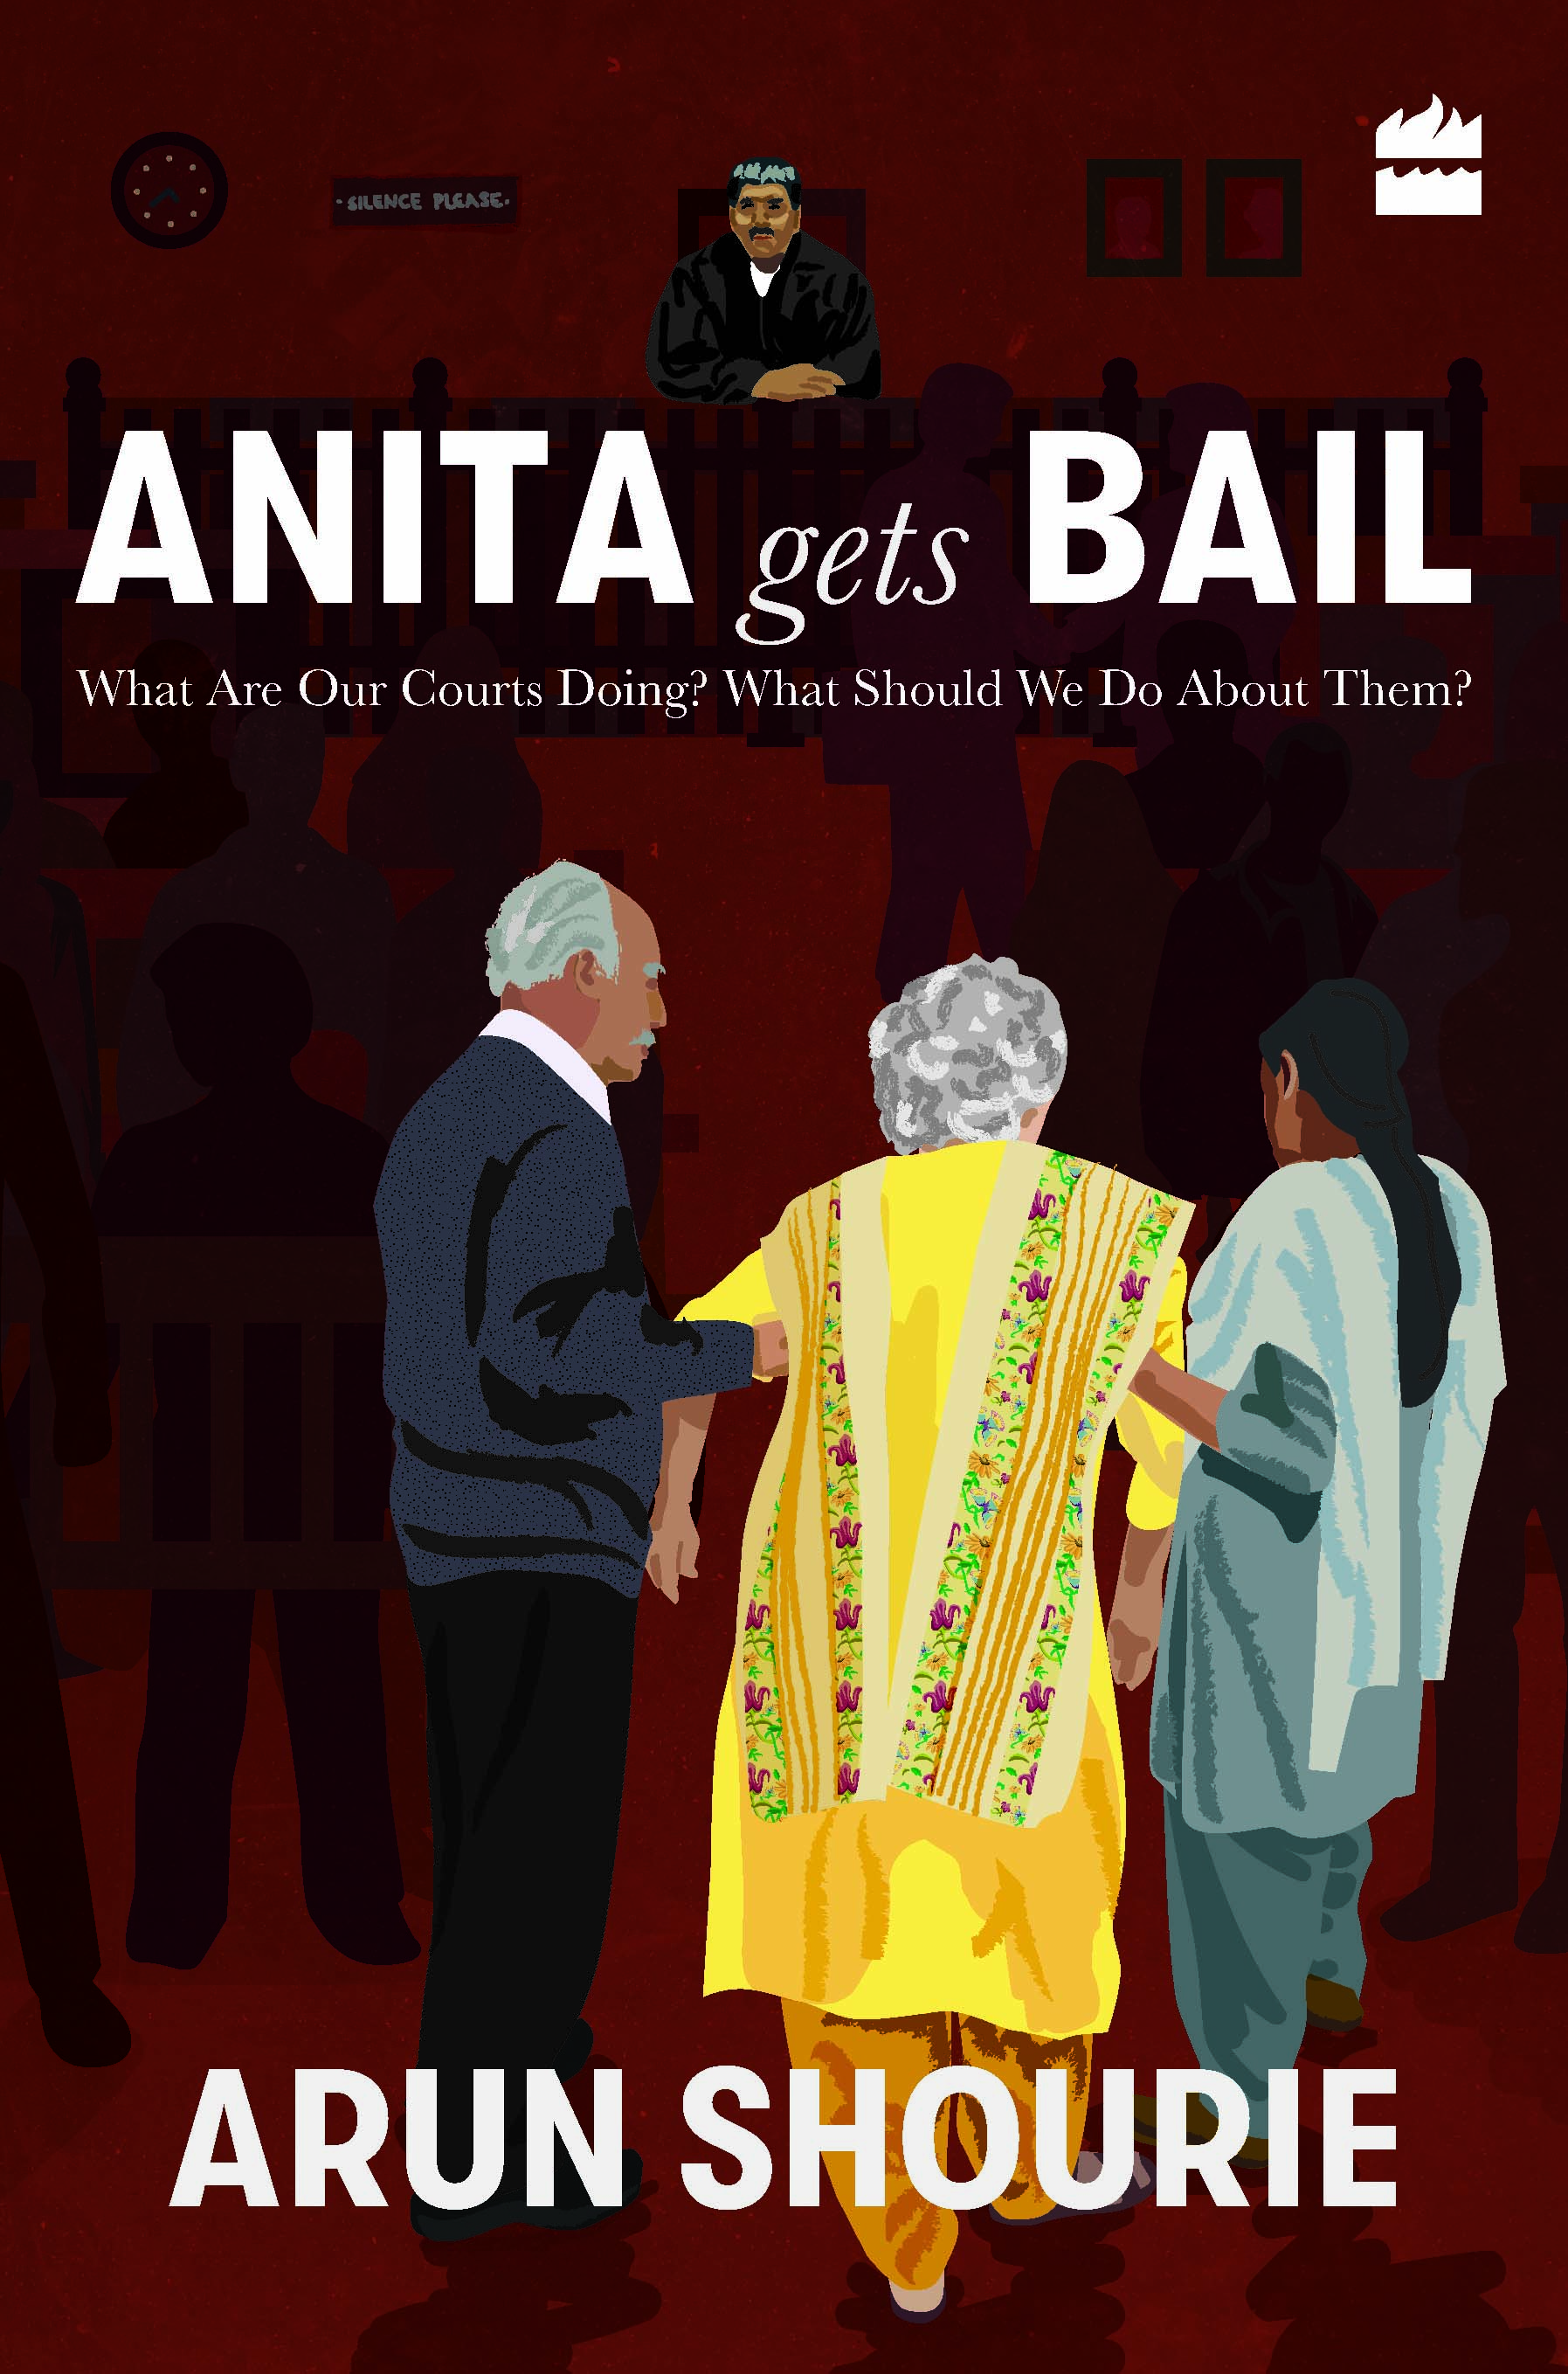 The cover of the book has a most moving drawing of Anita Shourie, the very image of human dignity,  being helped into a courtroom by Arun Shourie and a helpful lady, perhaps Anita's nursing assistant. The picture says it all: Trust,  persevere in truth. The artist Sanchita Jain has painted a masterpiece.